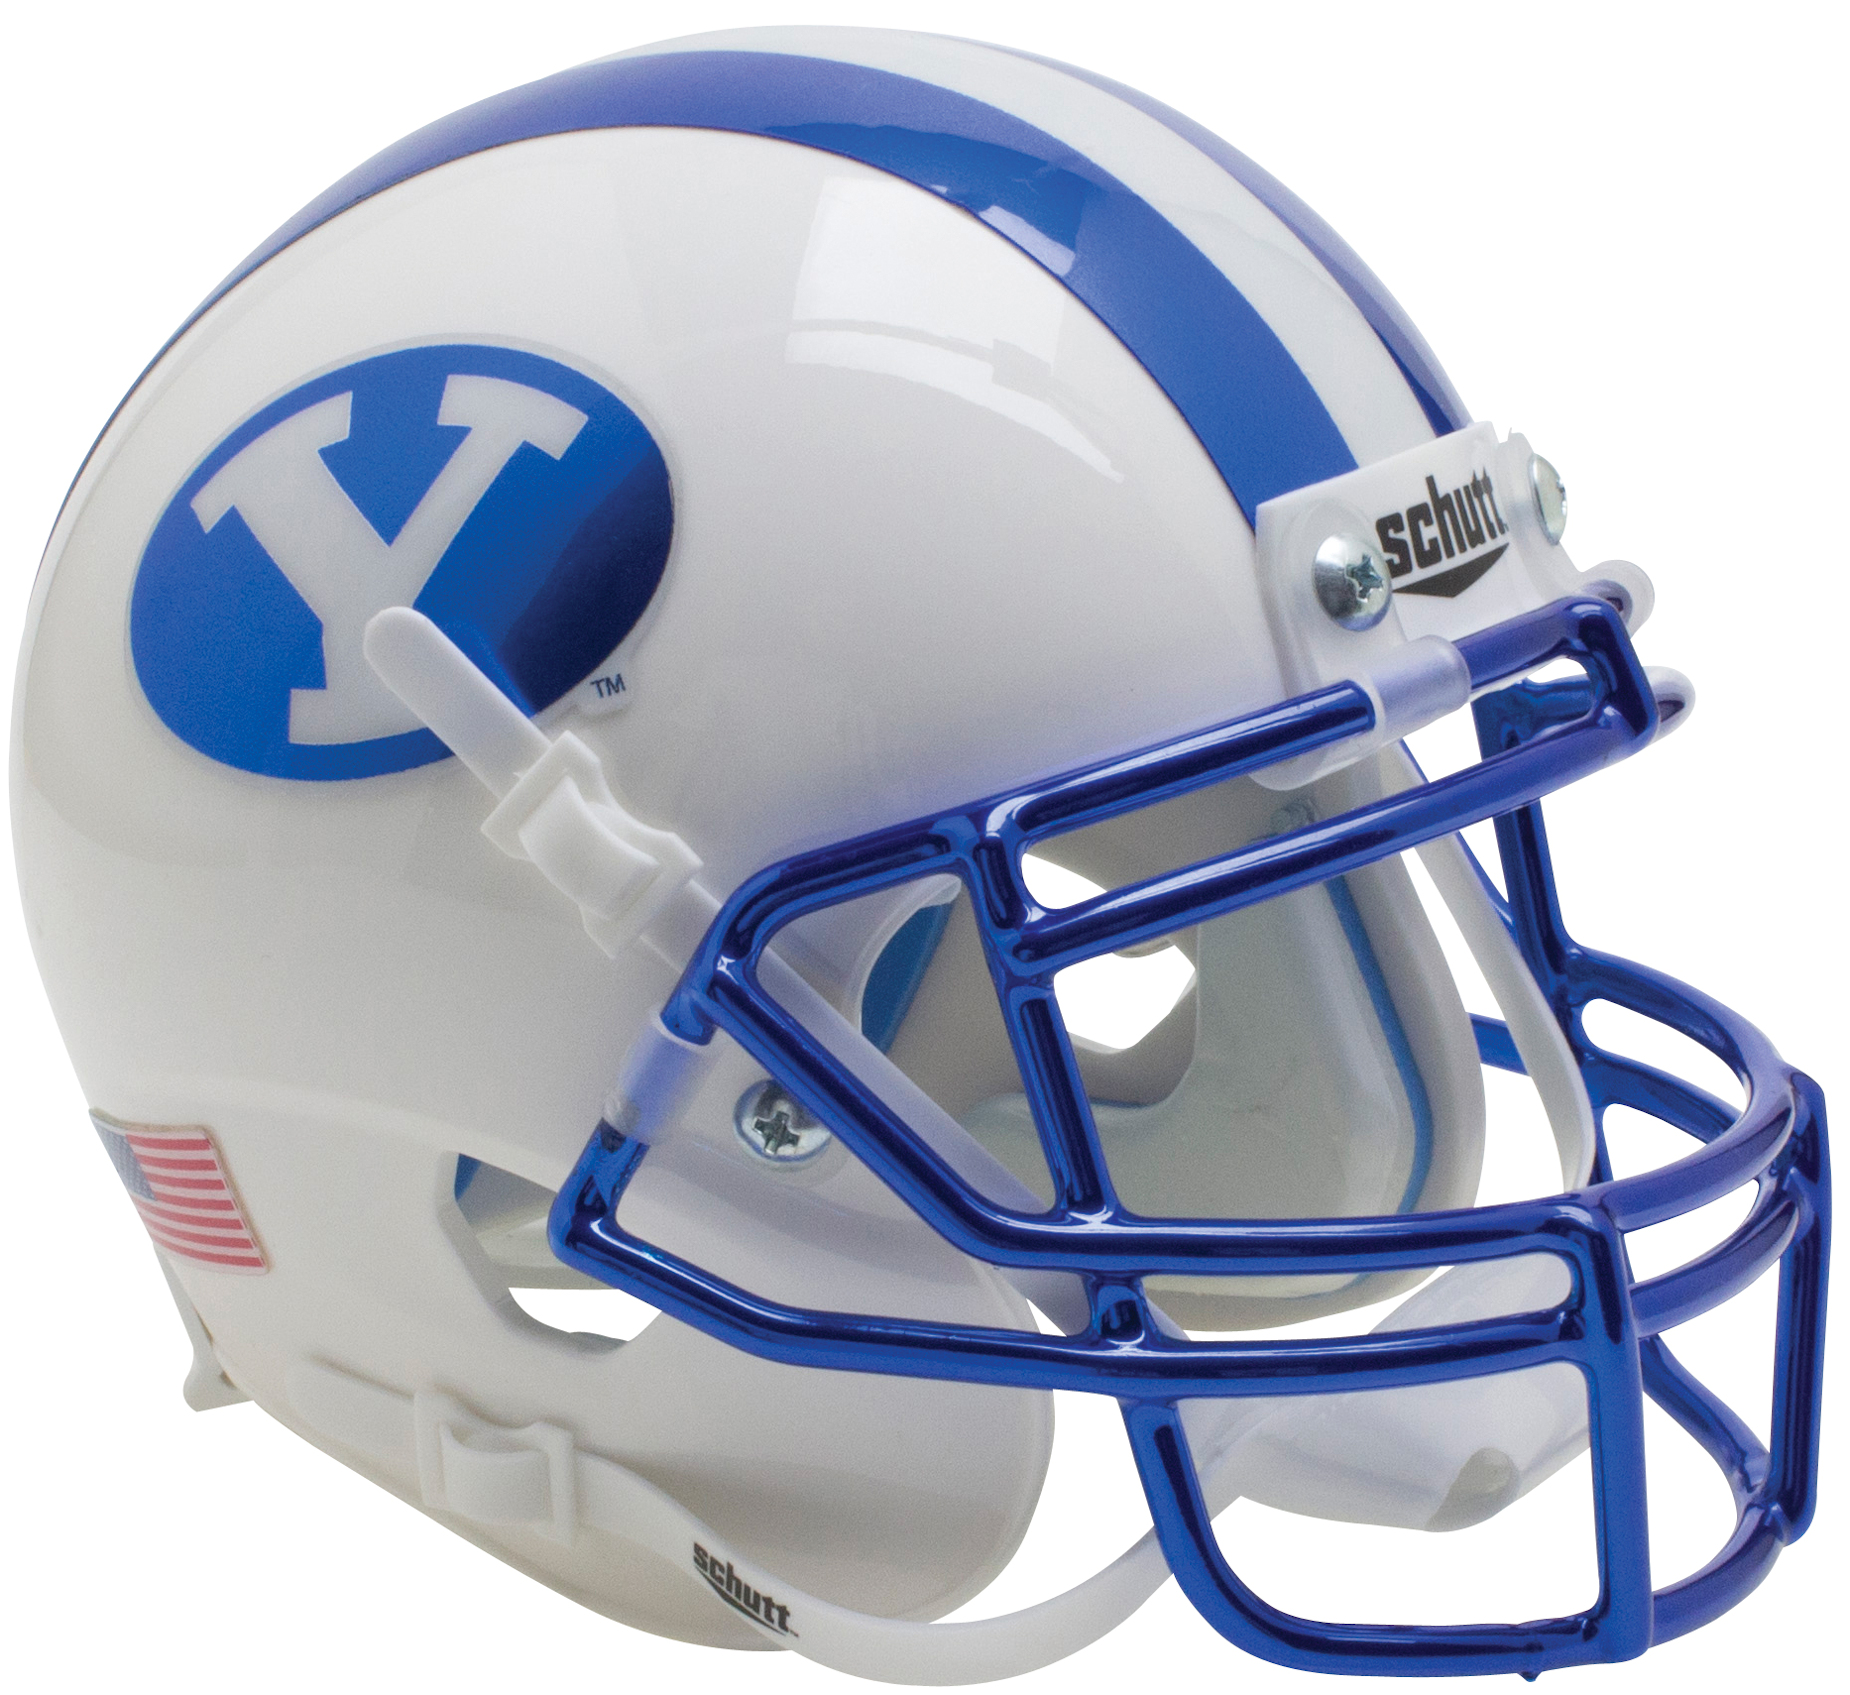 Brigham Young Cougars Mini XP Authentic Helmet Schutt <B>Blue Chrome Decals and Mask</B>